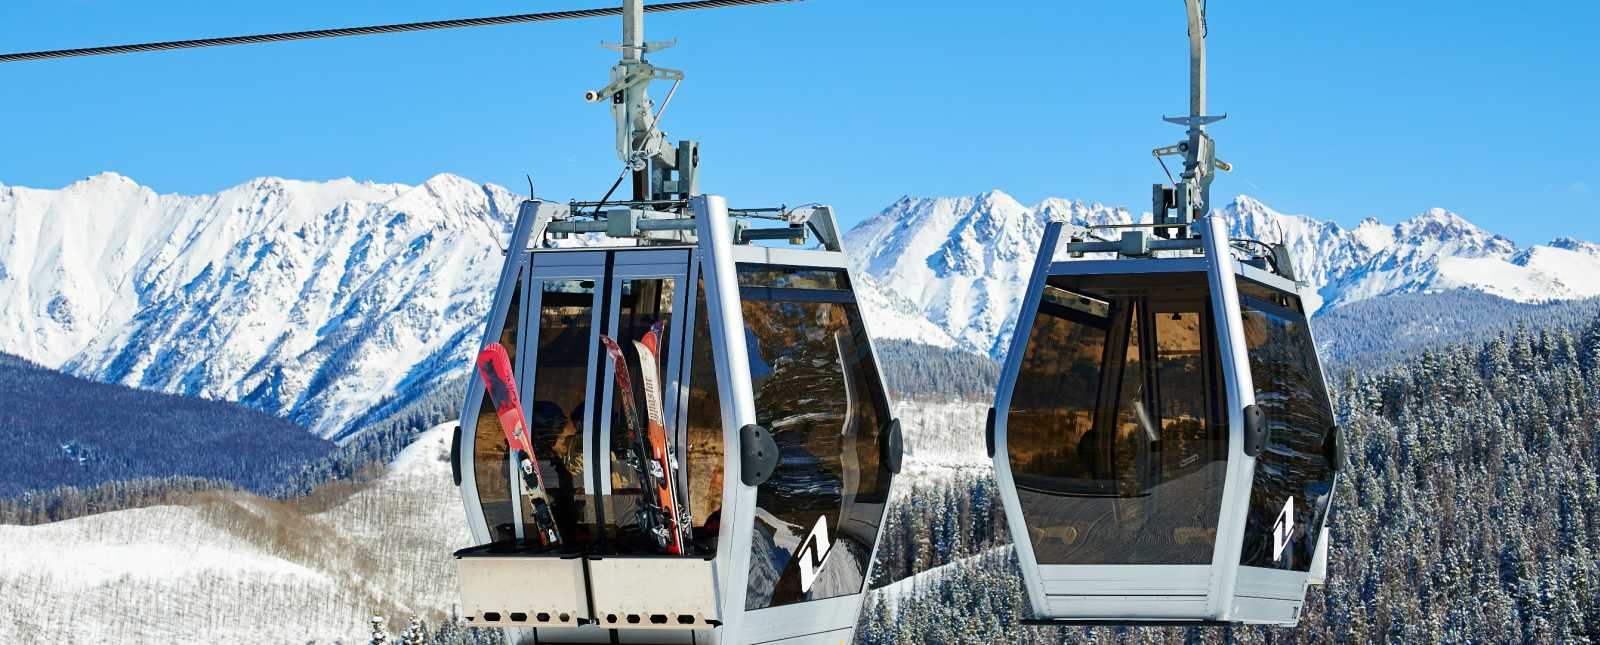 vail-resorts-gondola-one-winter